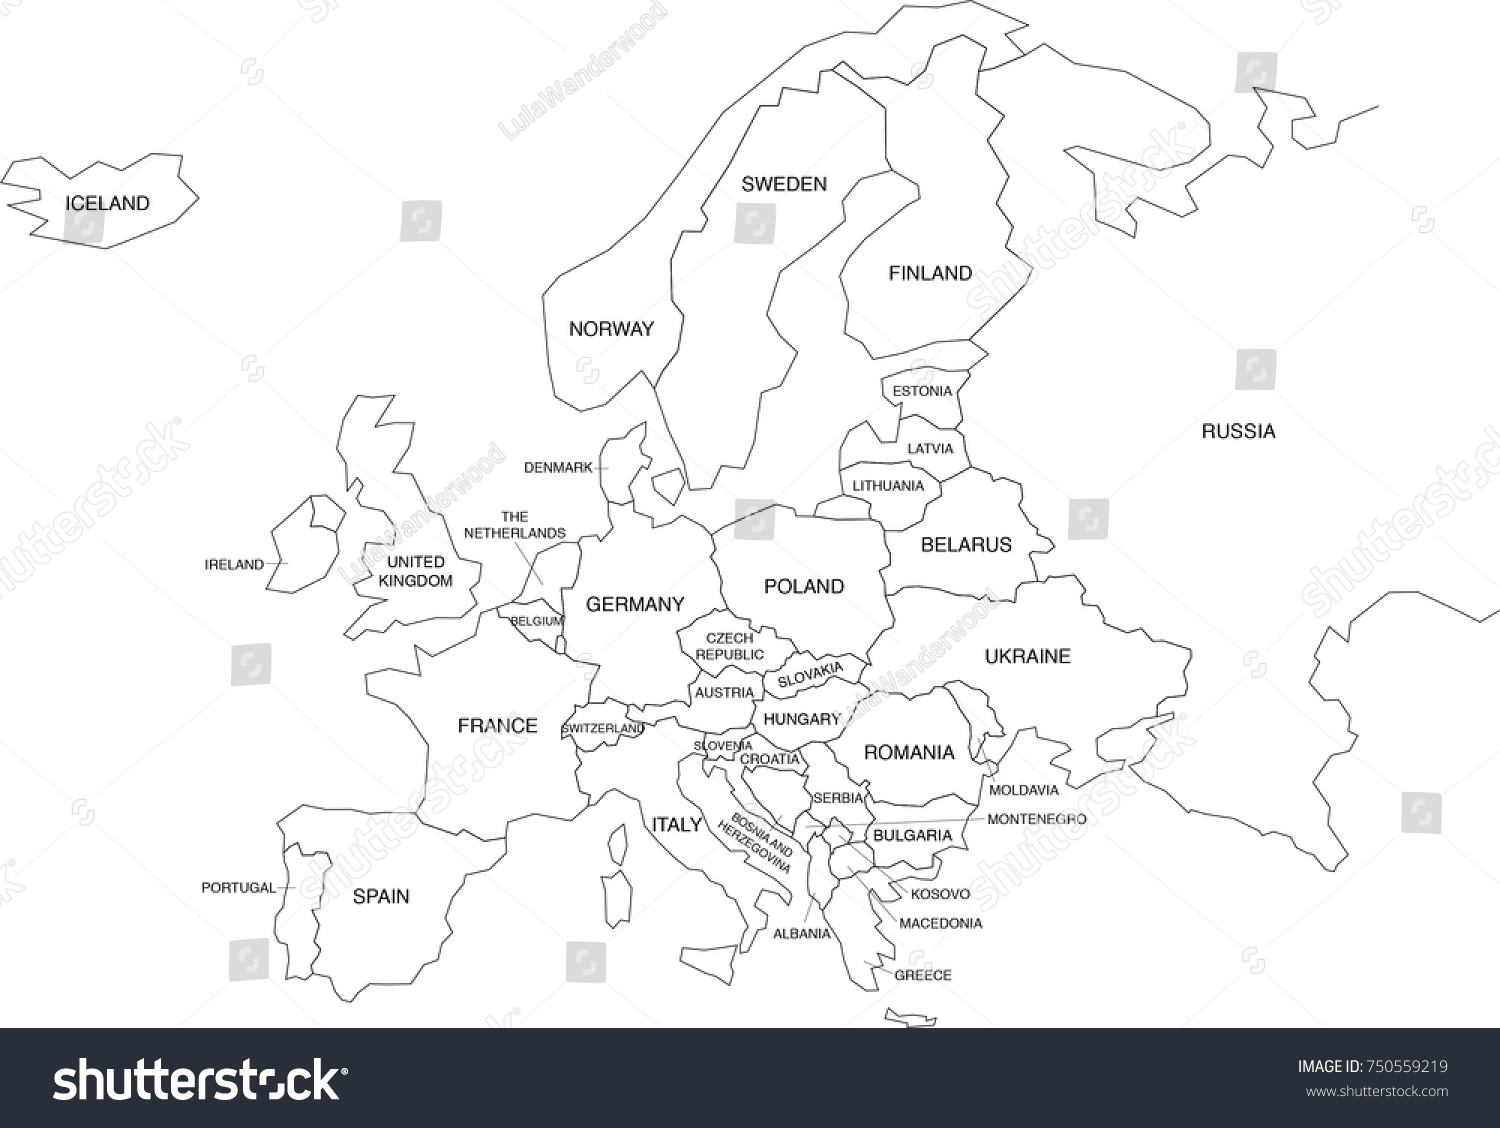 coloring map of europe - Lamasa.jasonkellyphoto.co